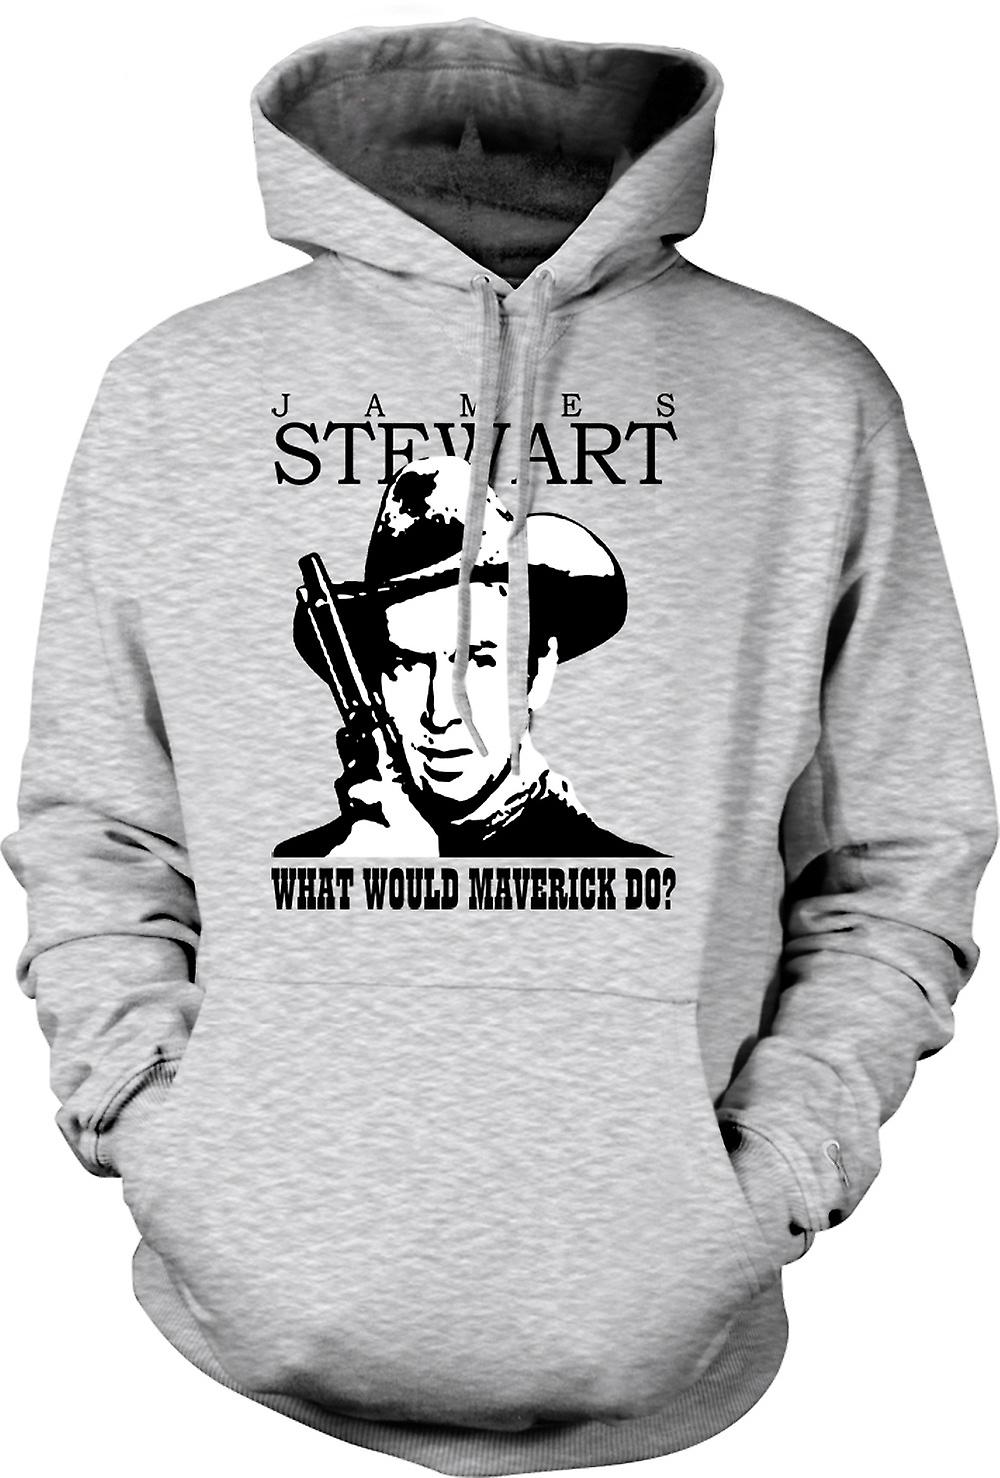 Mens Hoodie - James Stewart - Maverick Cowboy